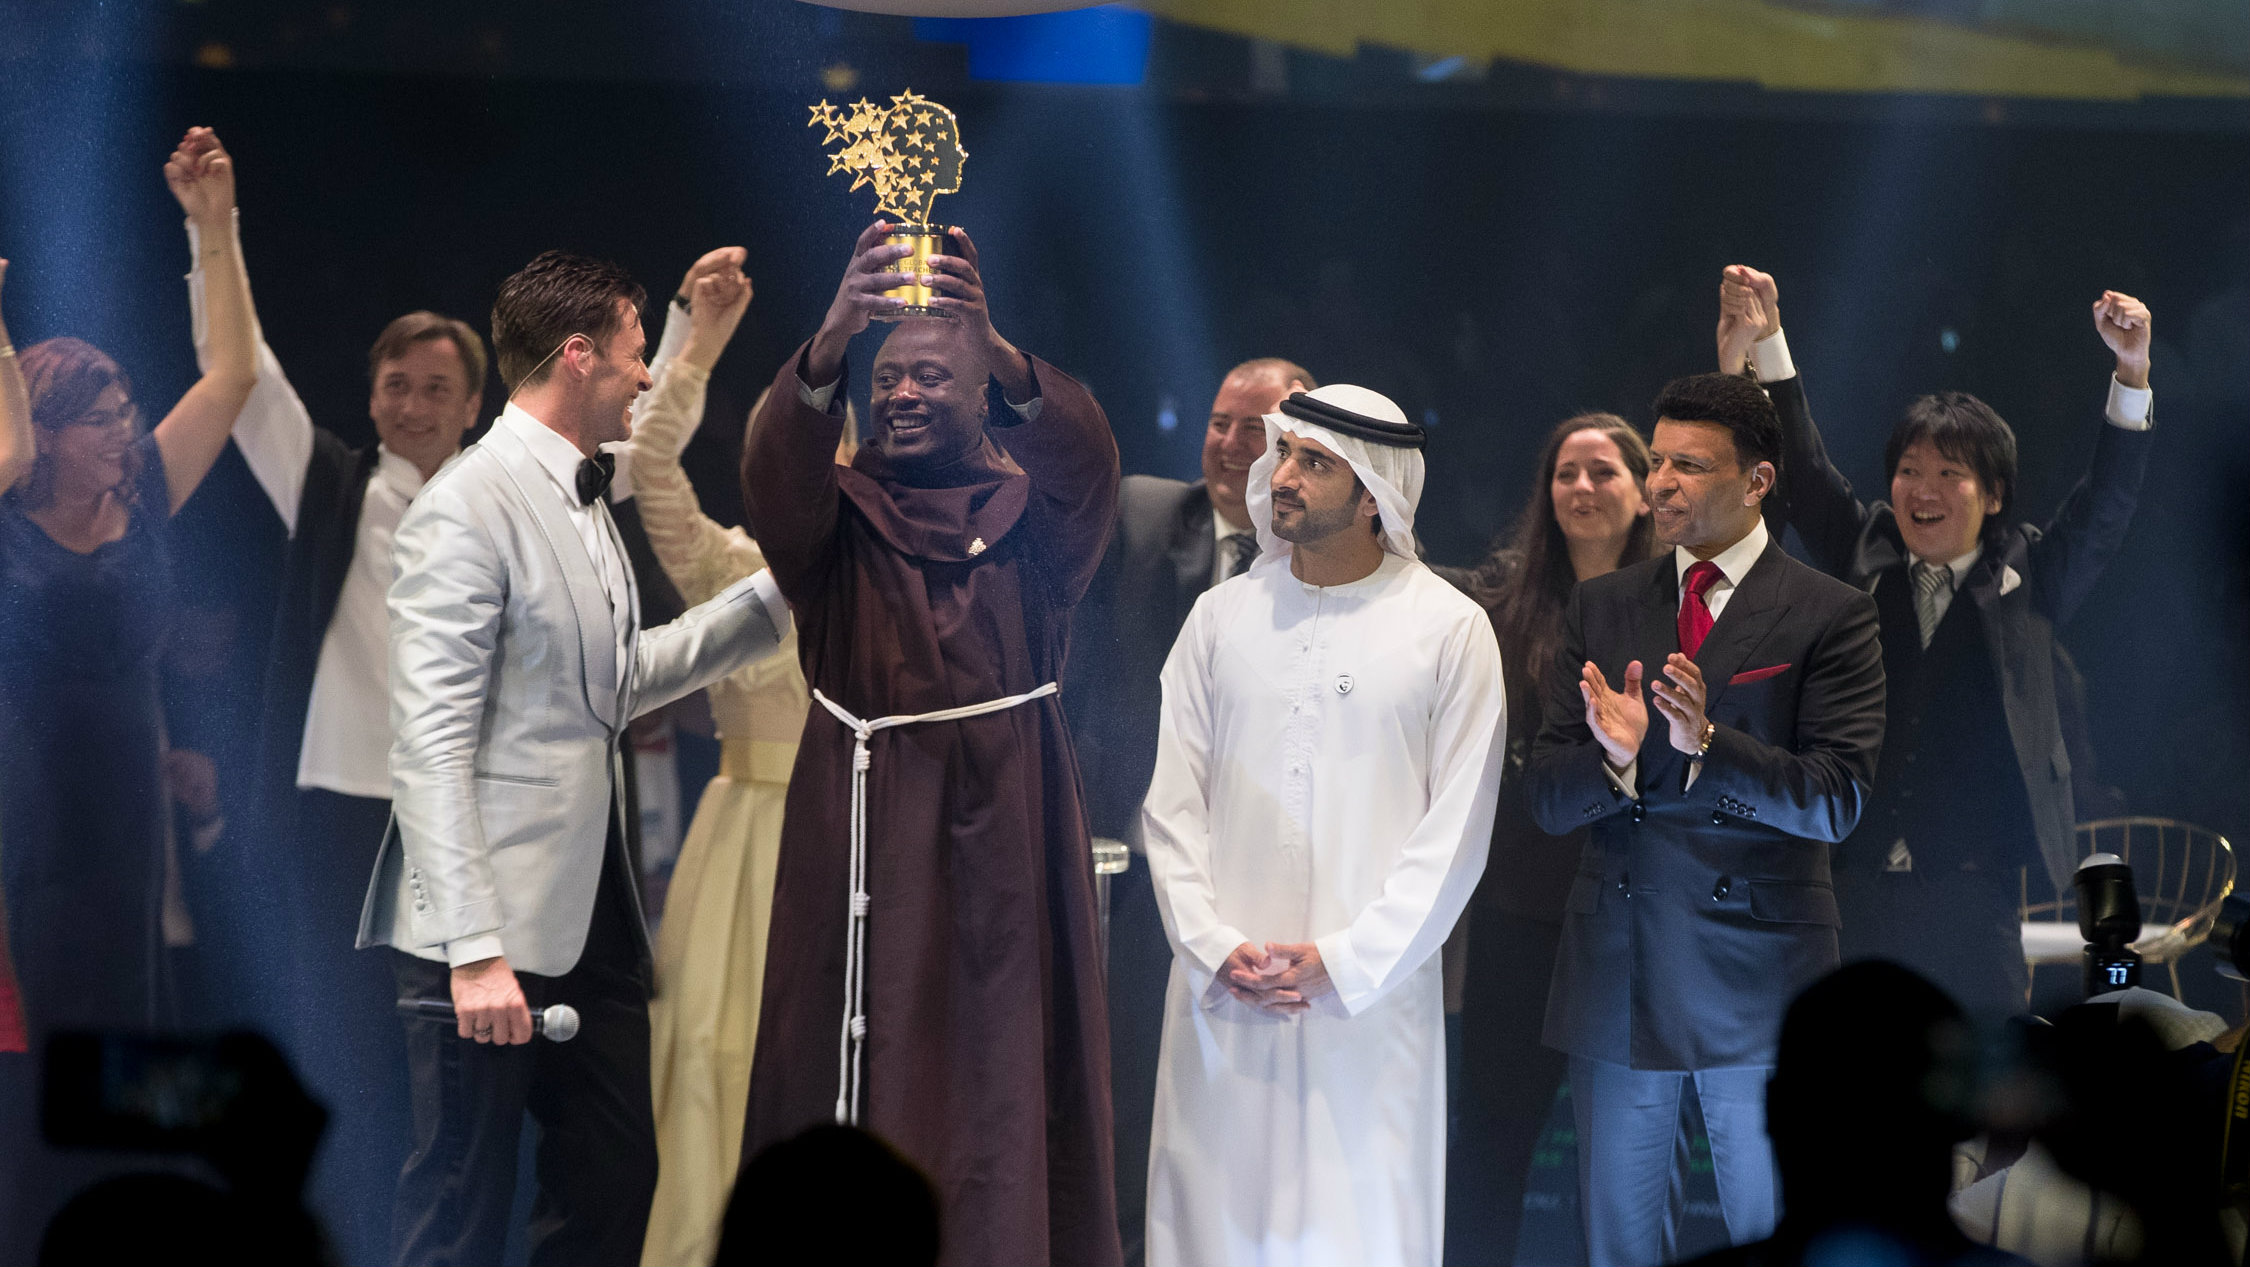 Peter Tabichi wins the $1 million Varkey Foundation Global Teacher Prize.